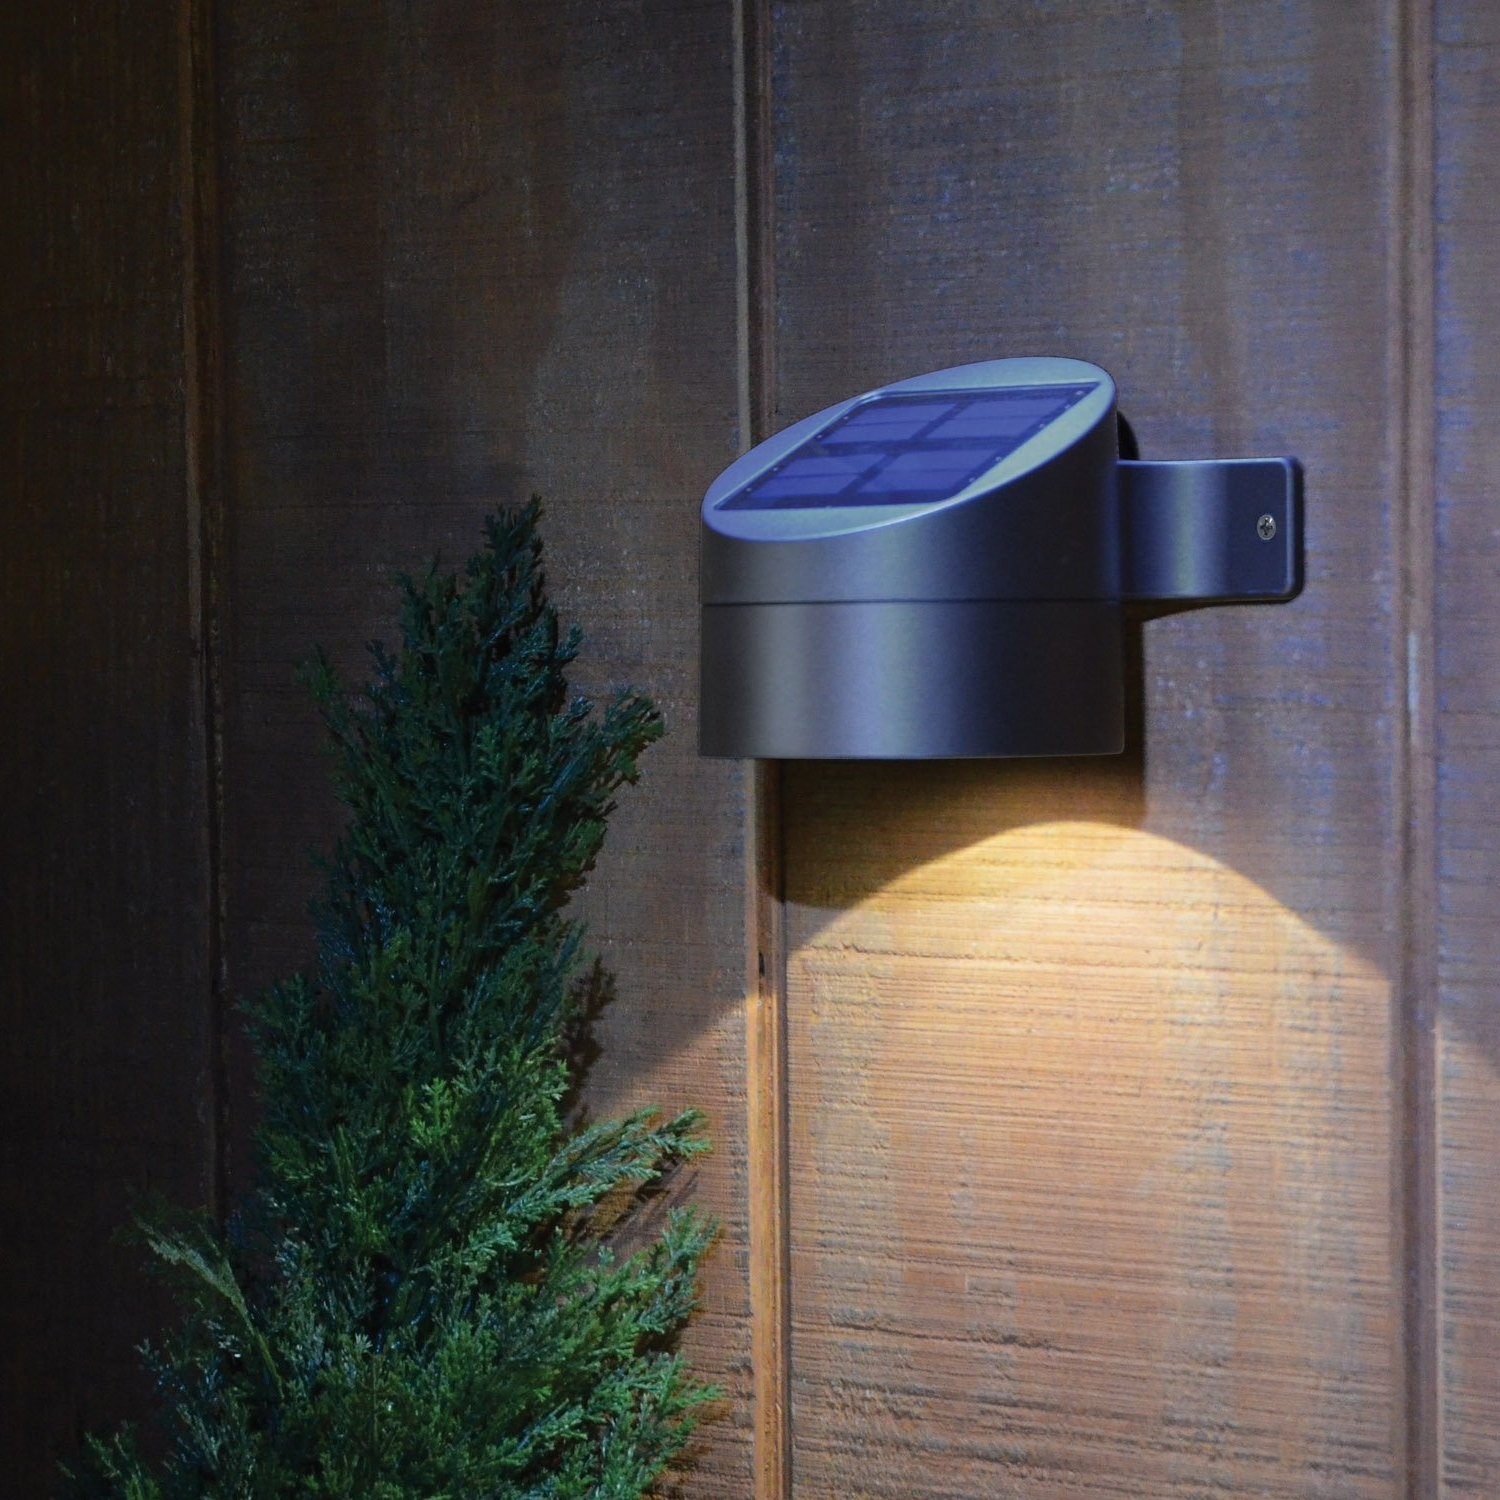 Famous Light : Home Accessories Stuff Solar Wall Mount Outdoor Lights In Solar Powered Outdoor Lights (View 4 of 20)